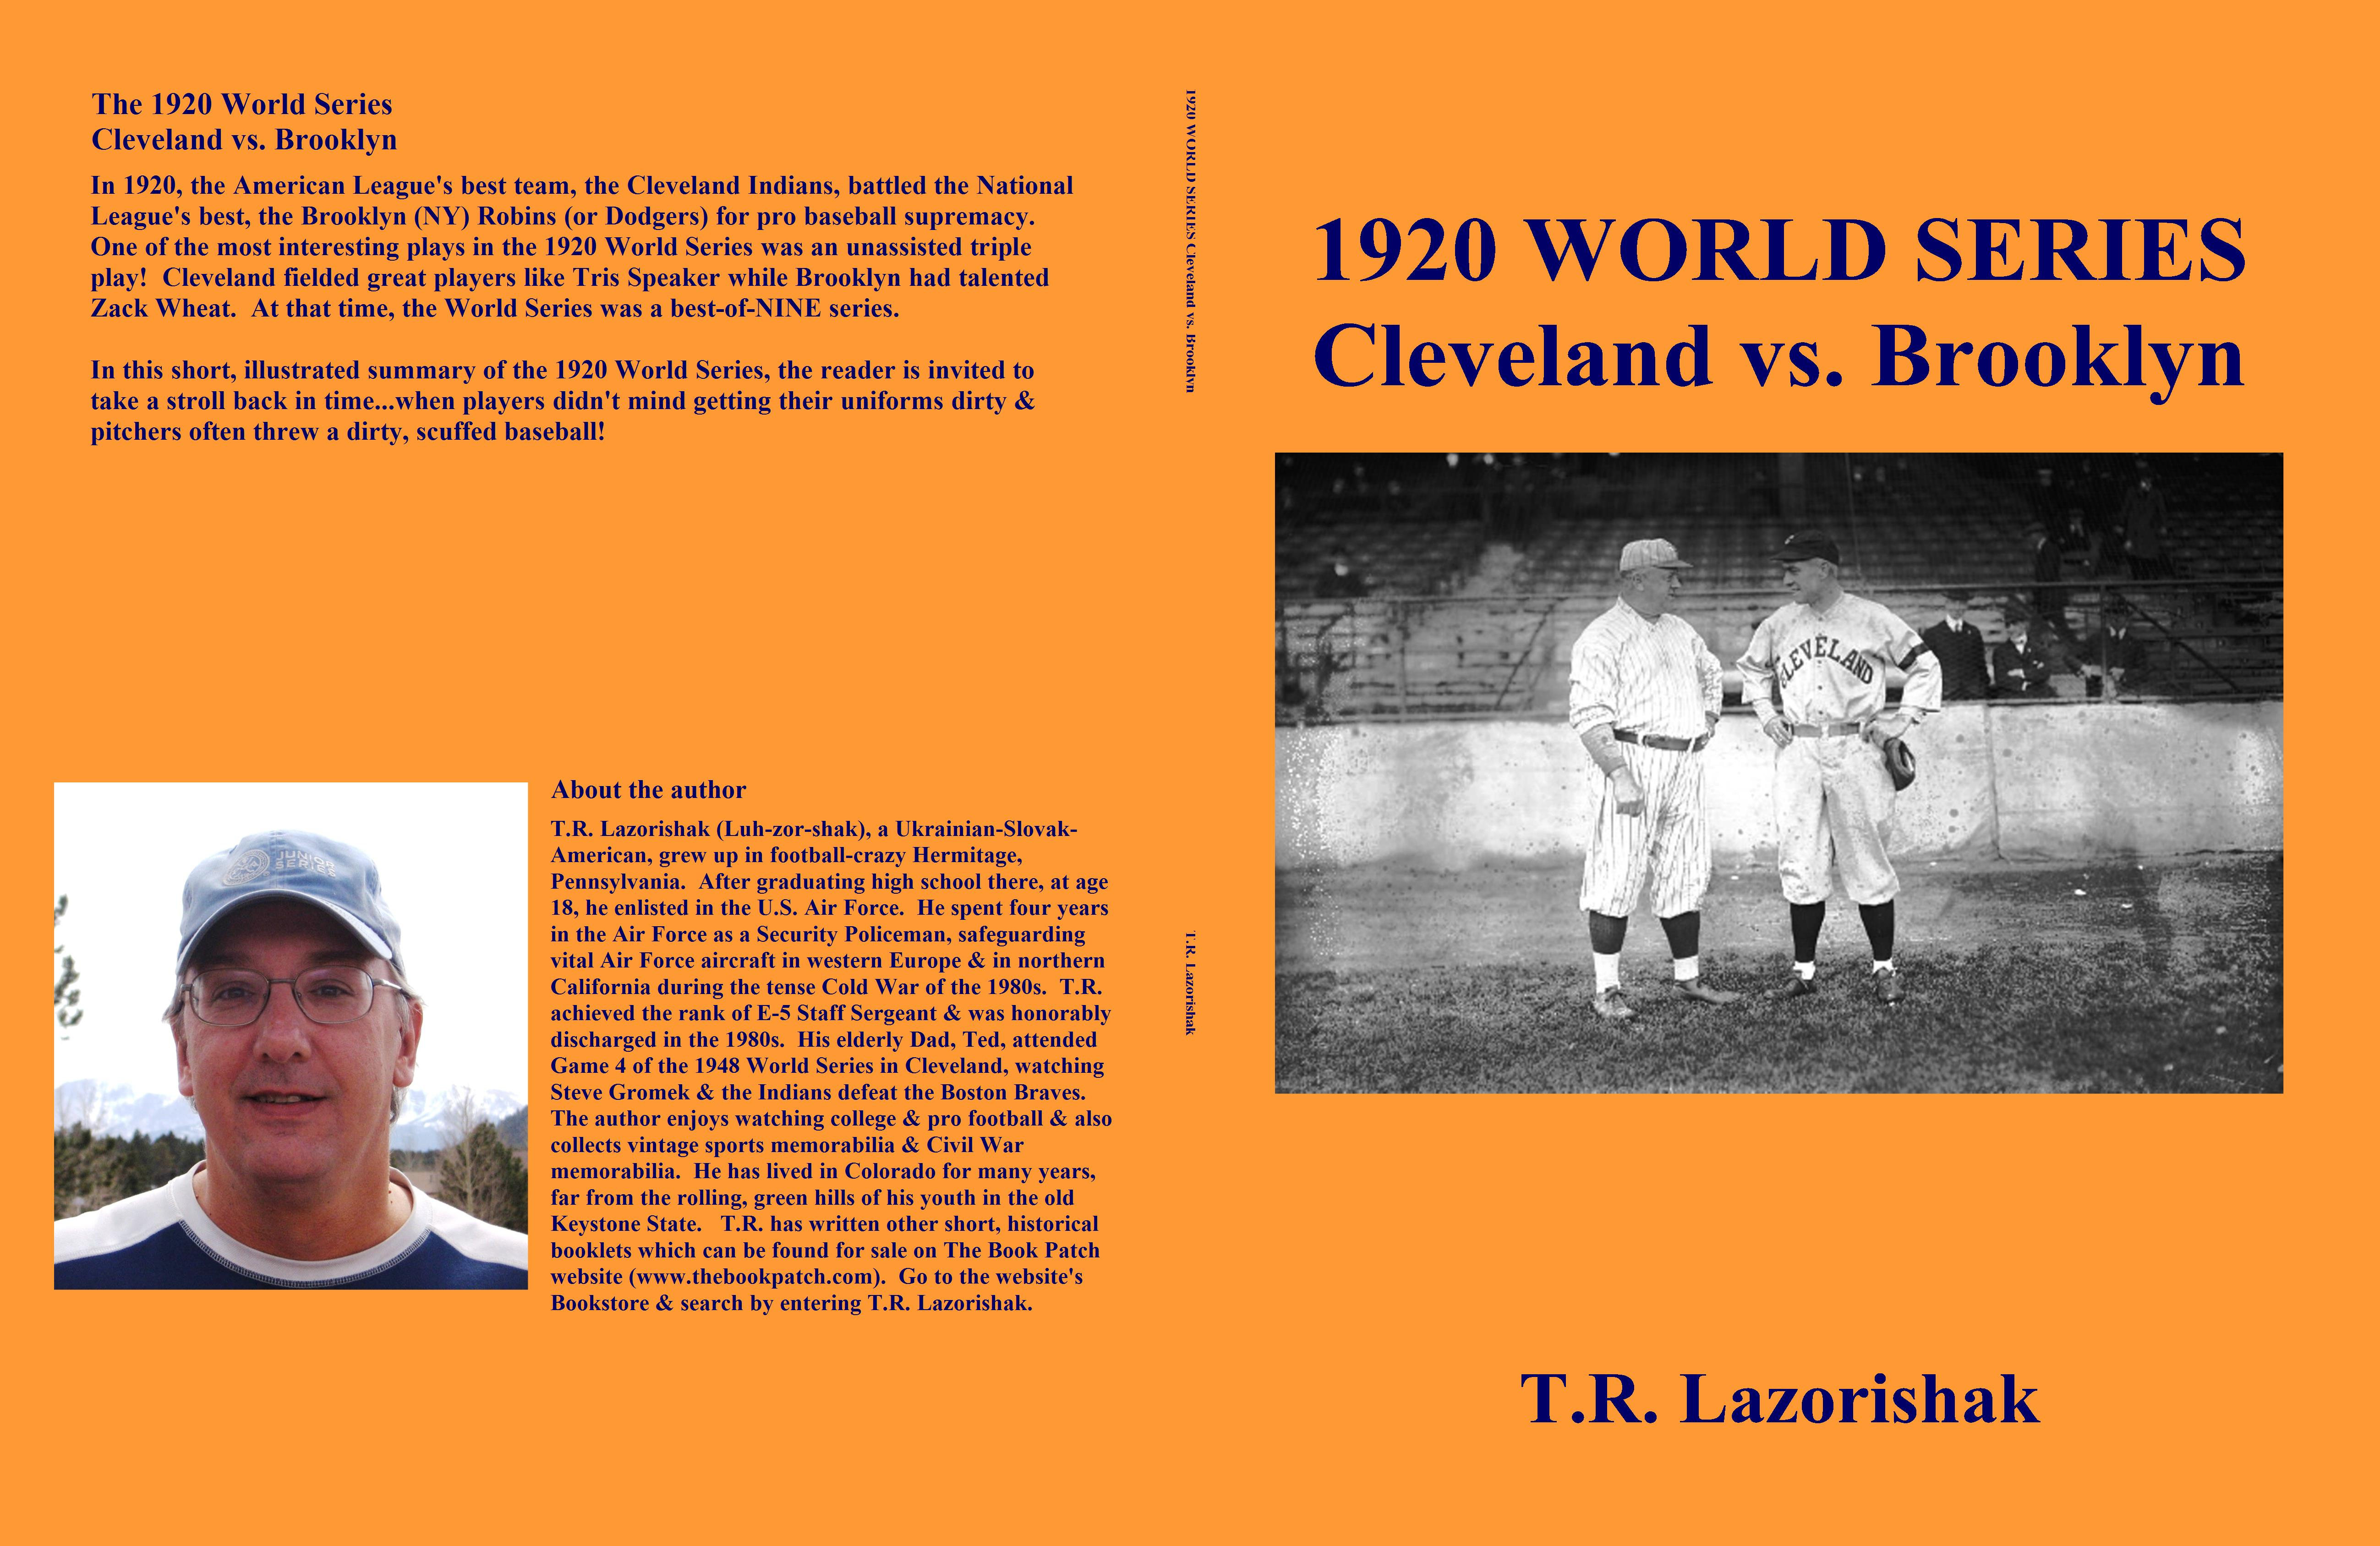 1920 WORLD SERIES Cleveland vs. Brooklyn cover image